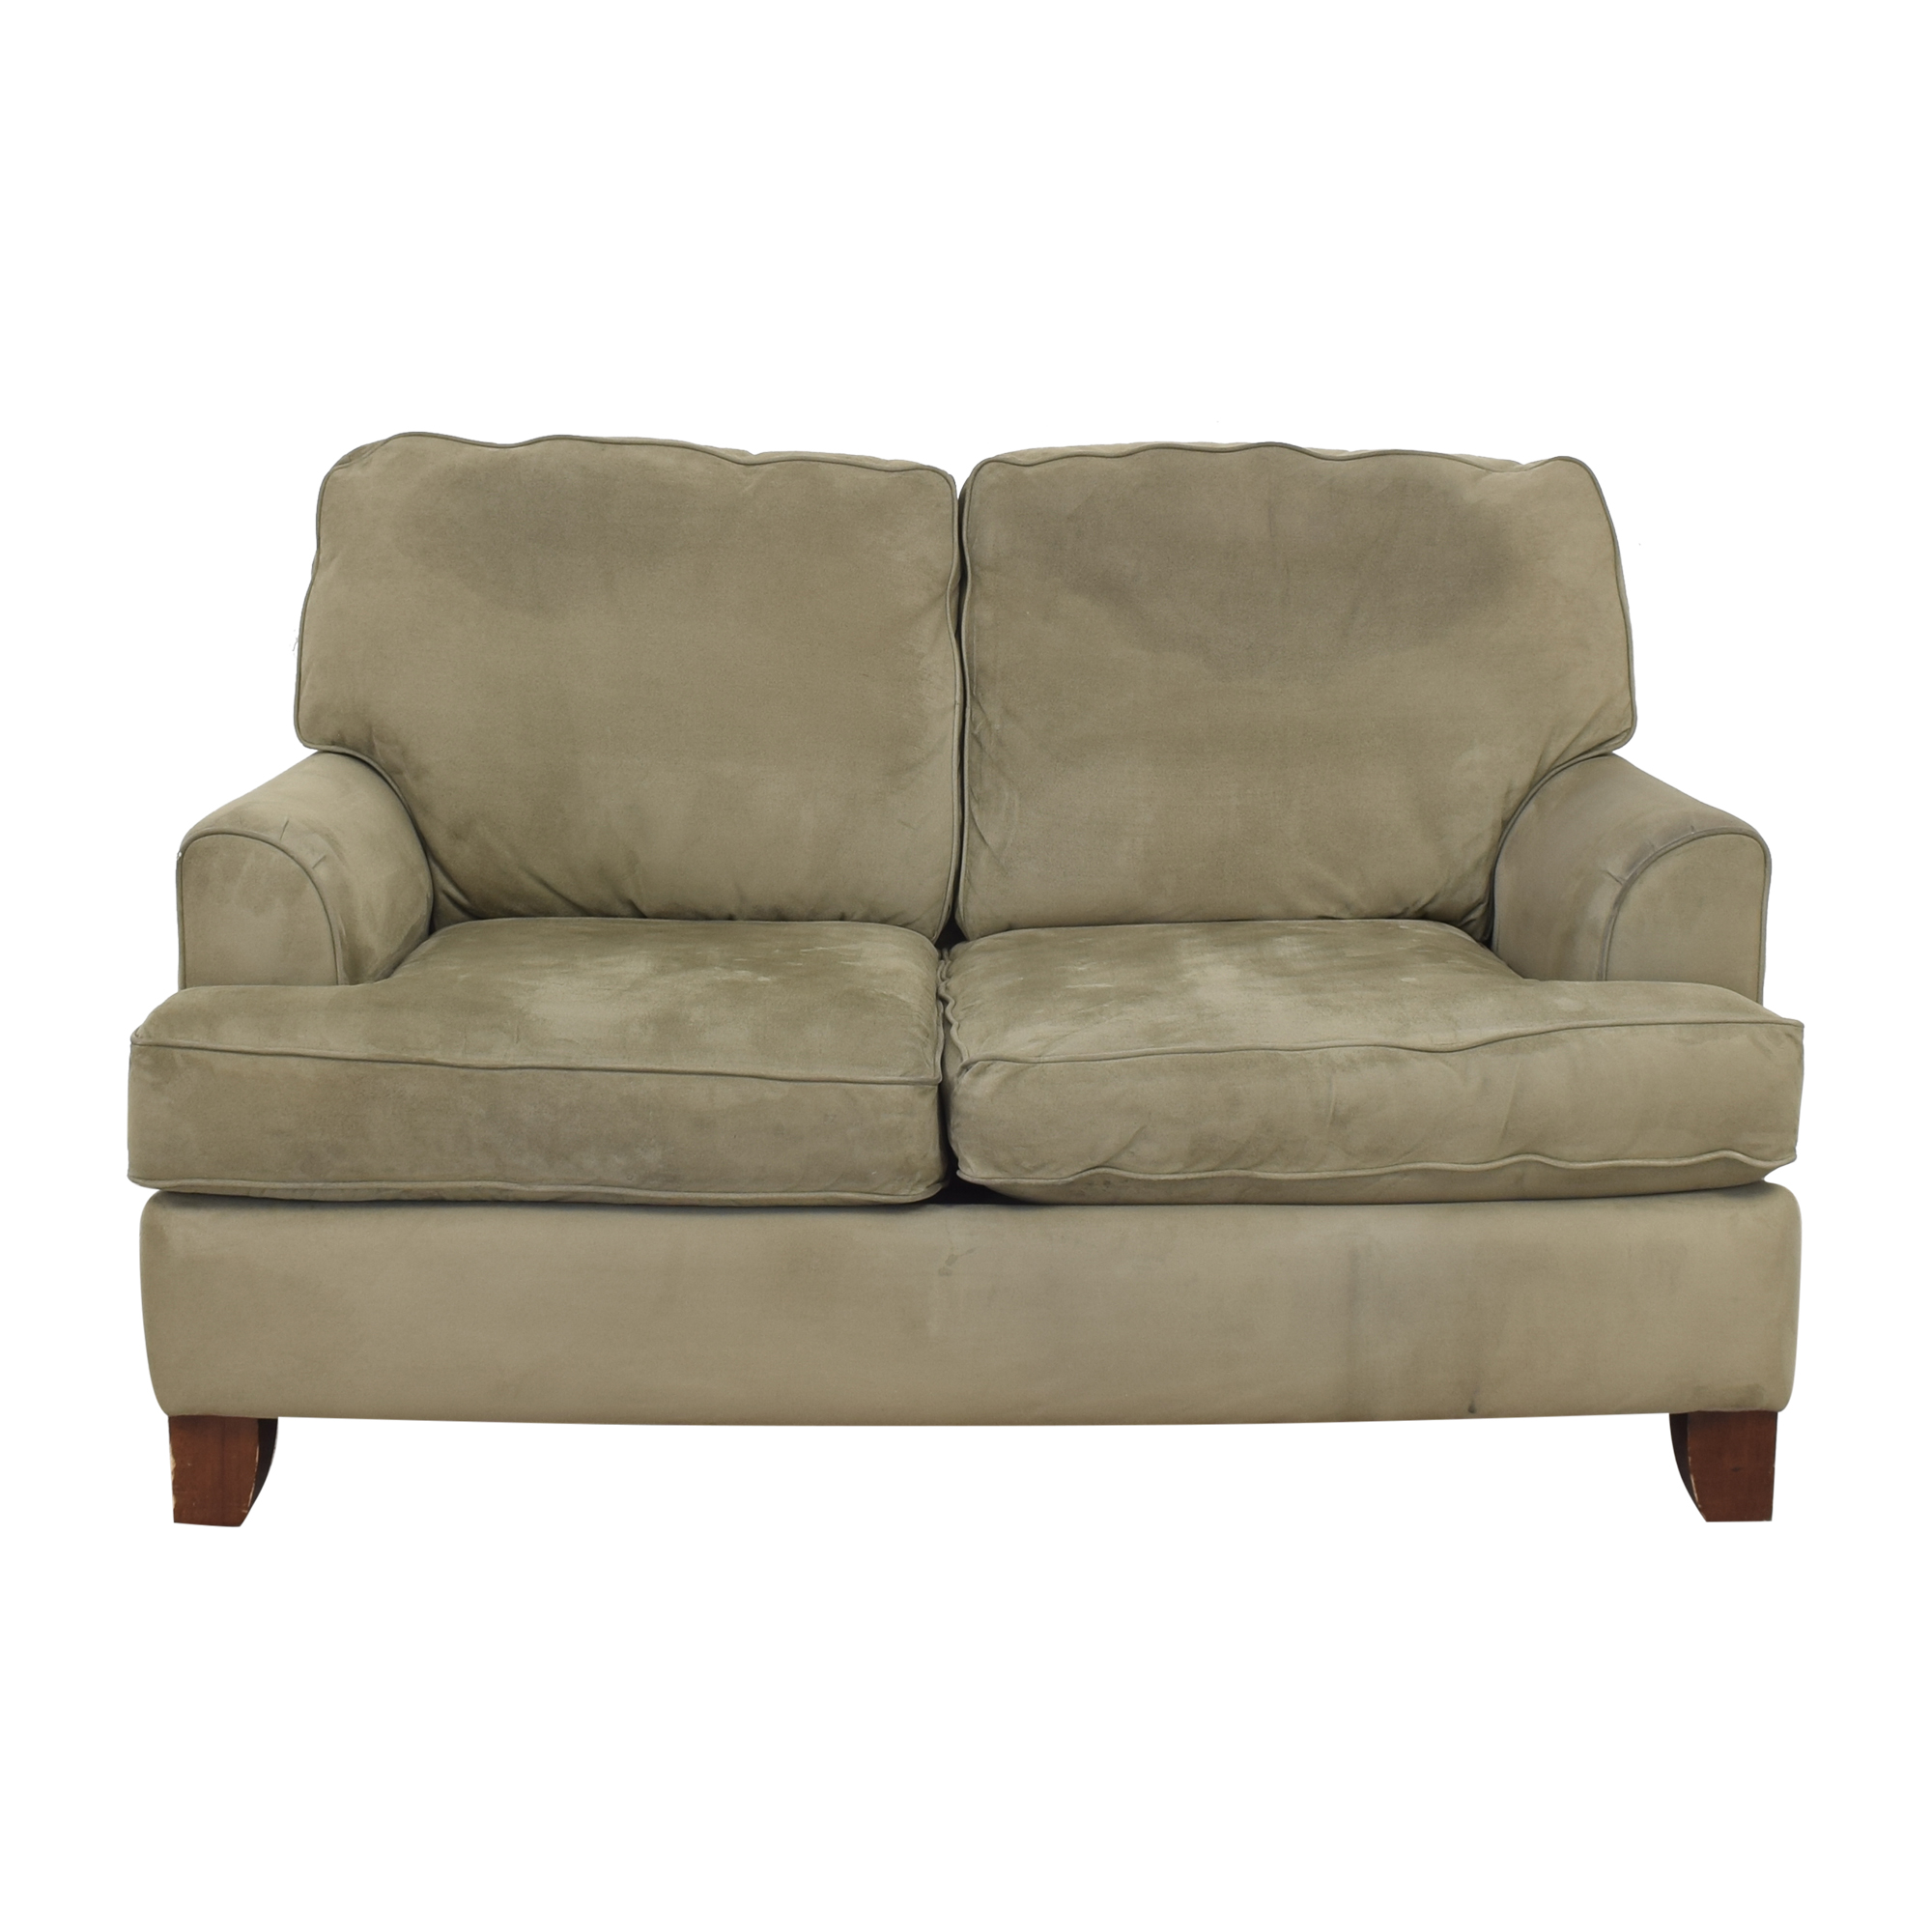 buy JC Penney JC Penney Two Cushion Loveseat online